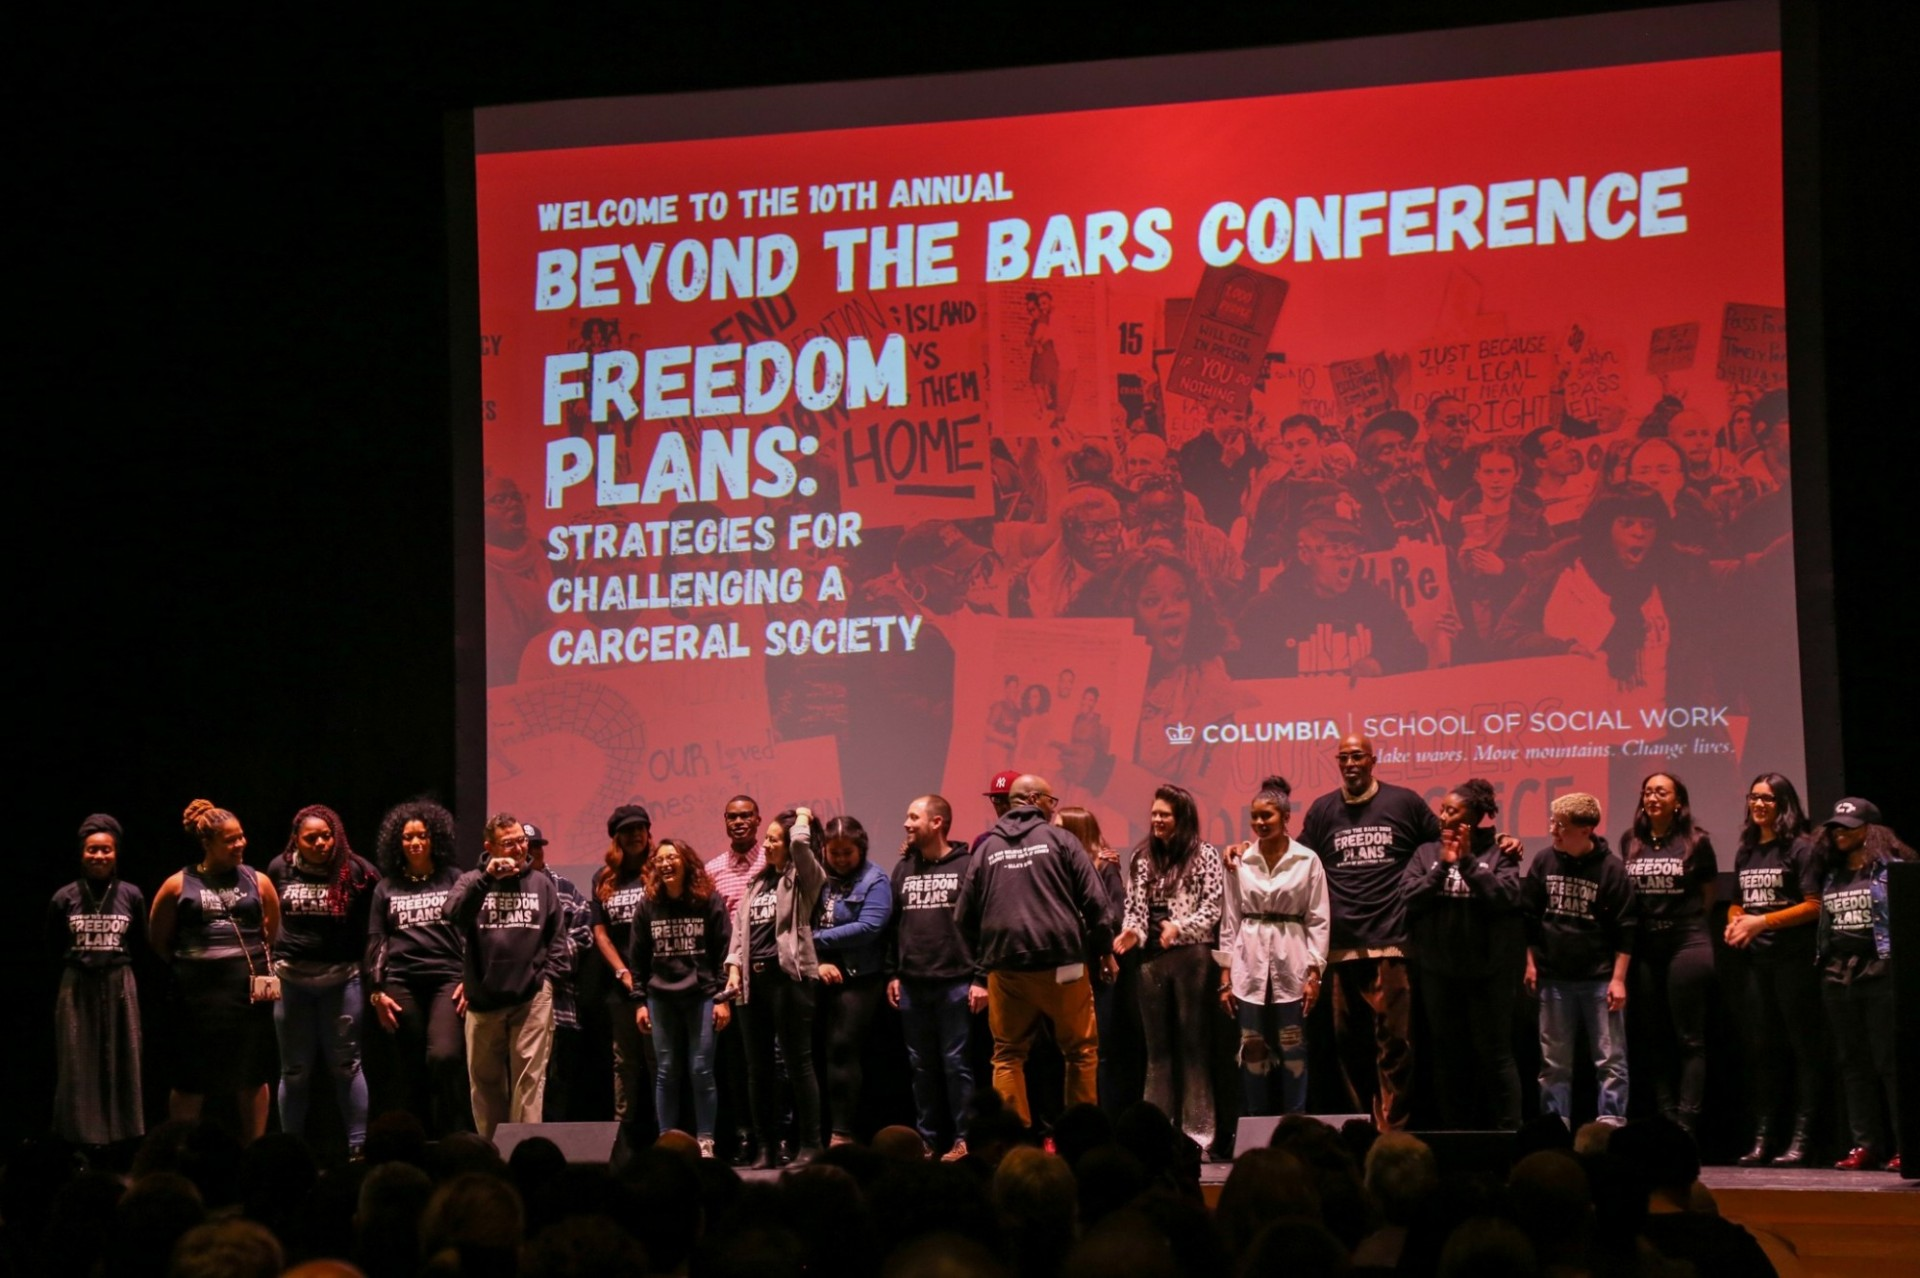 Beyond the Bars fellows on stage at the 2020 Beyond the Bars Conference